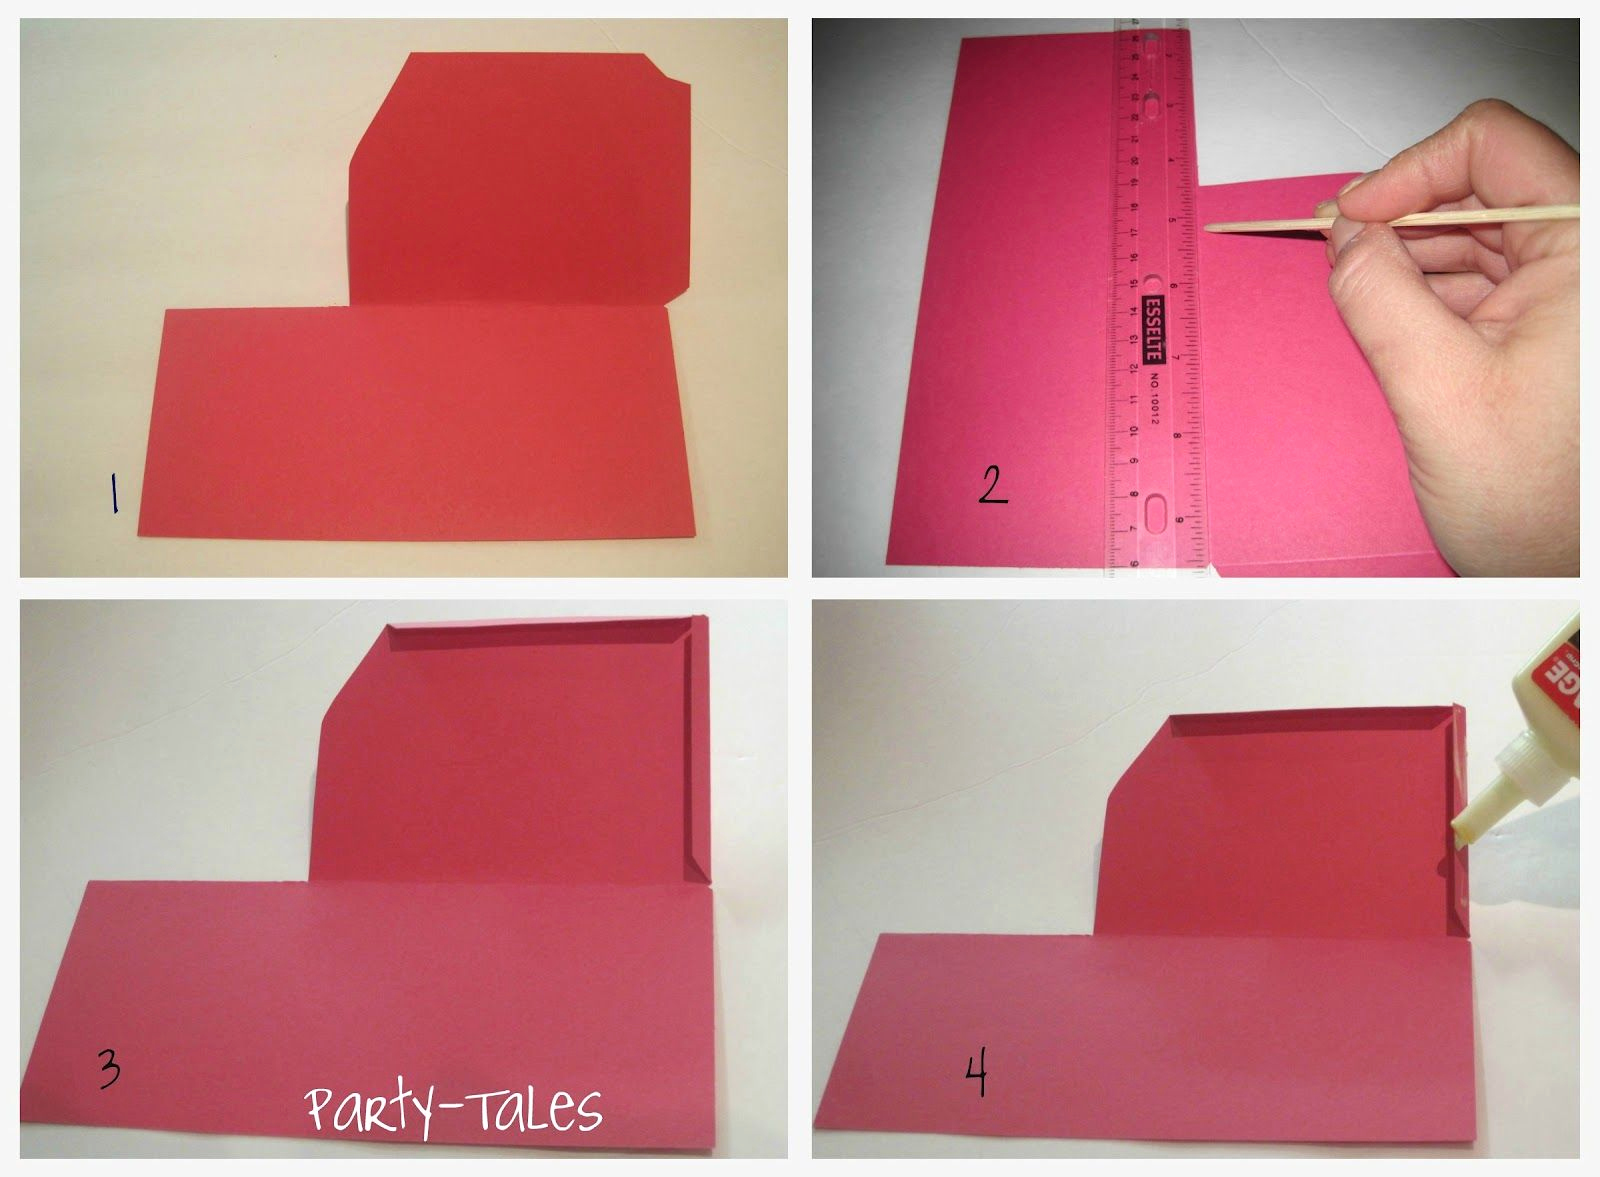 Diy Boarding Pass Invitation Lovely Party Tales Tutorial Diy How to Make A Boarding Pass